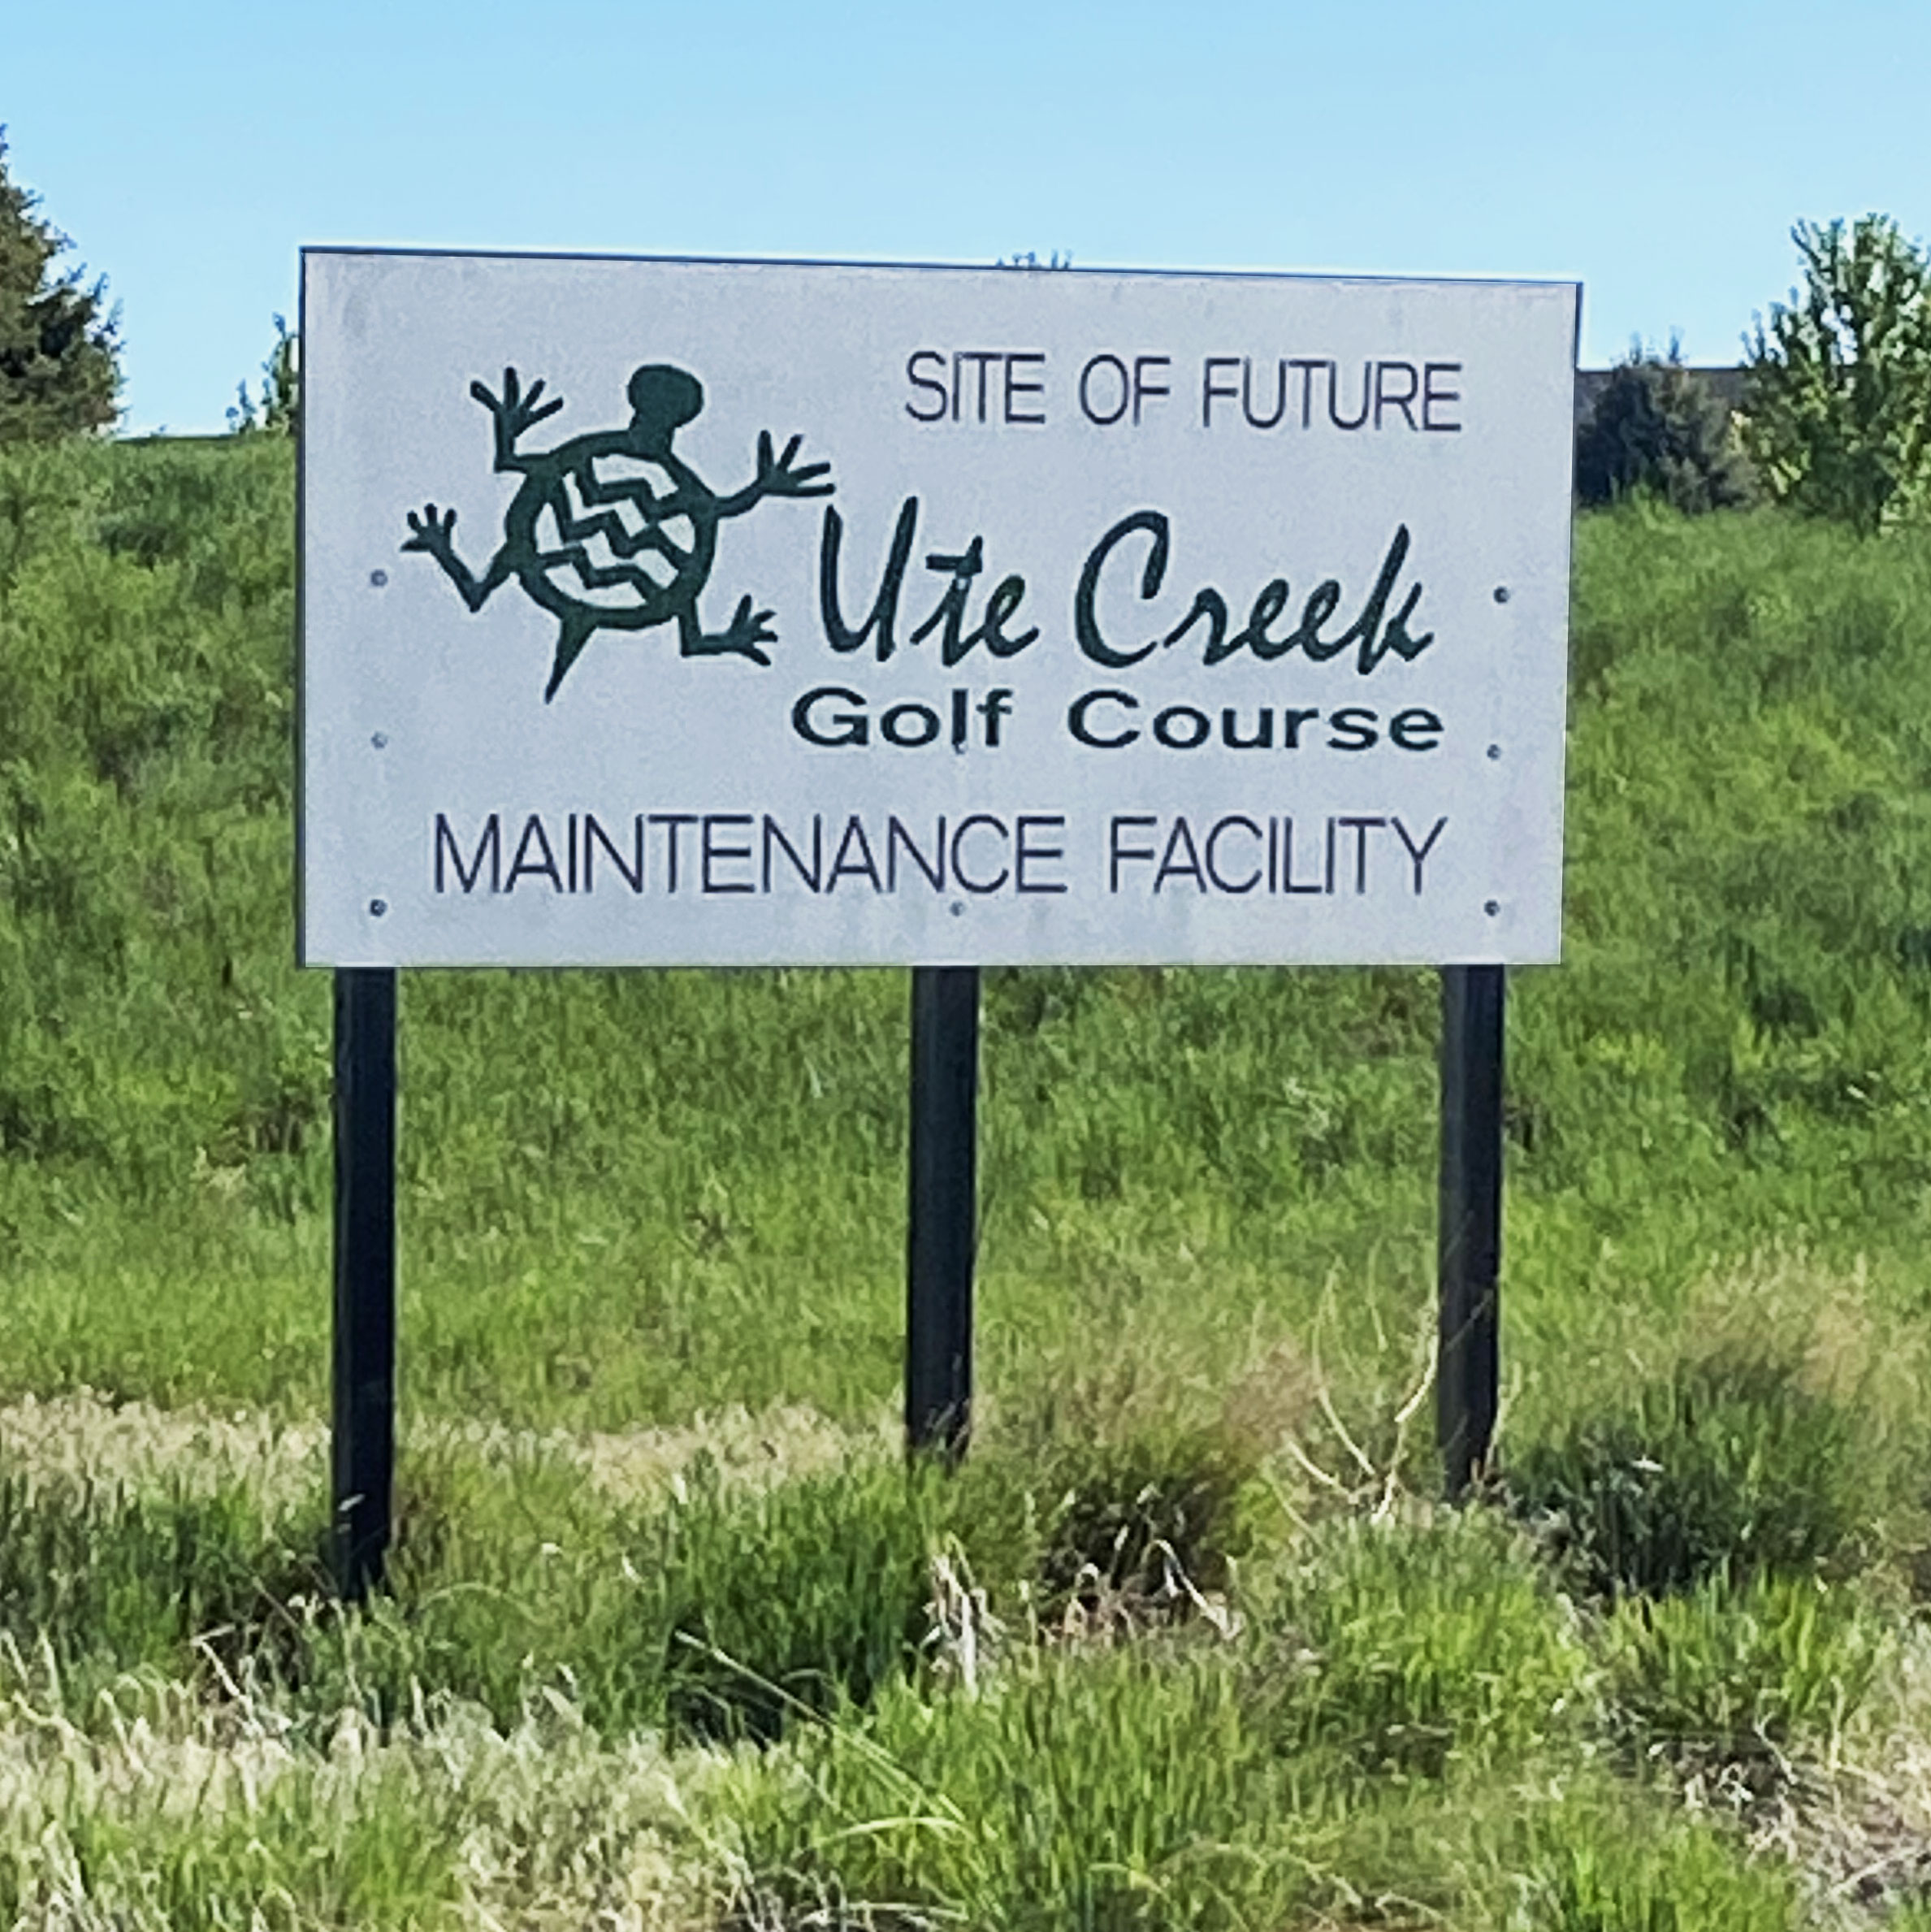 ute-creek-proposed-new-maintenance-building-site